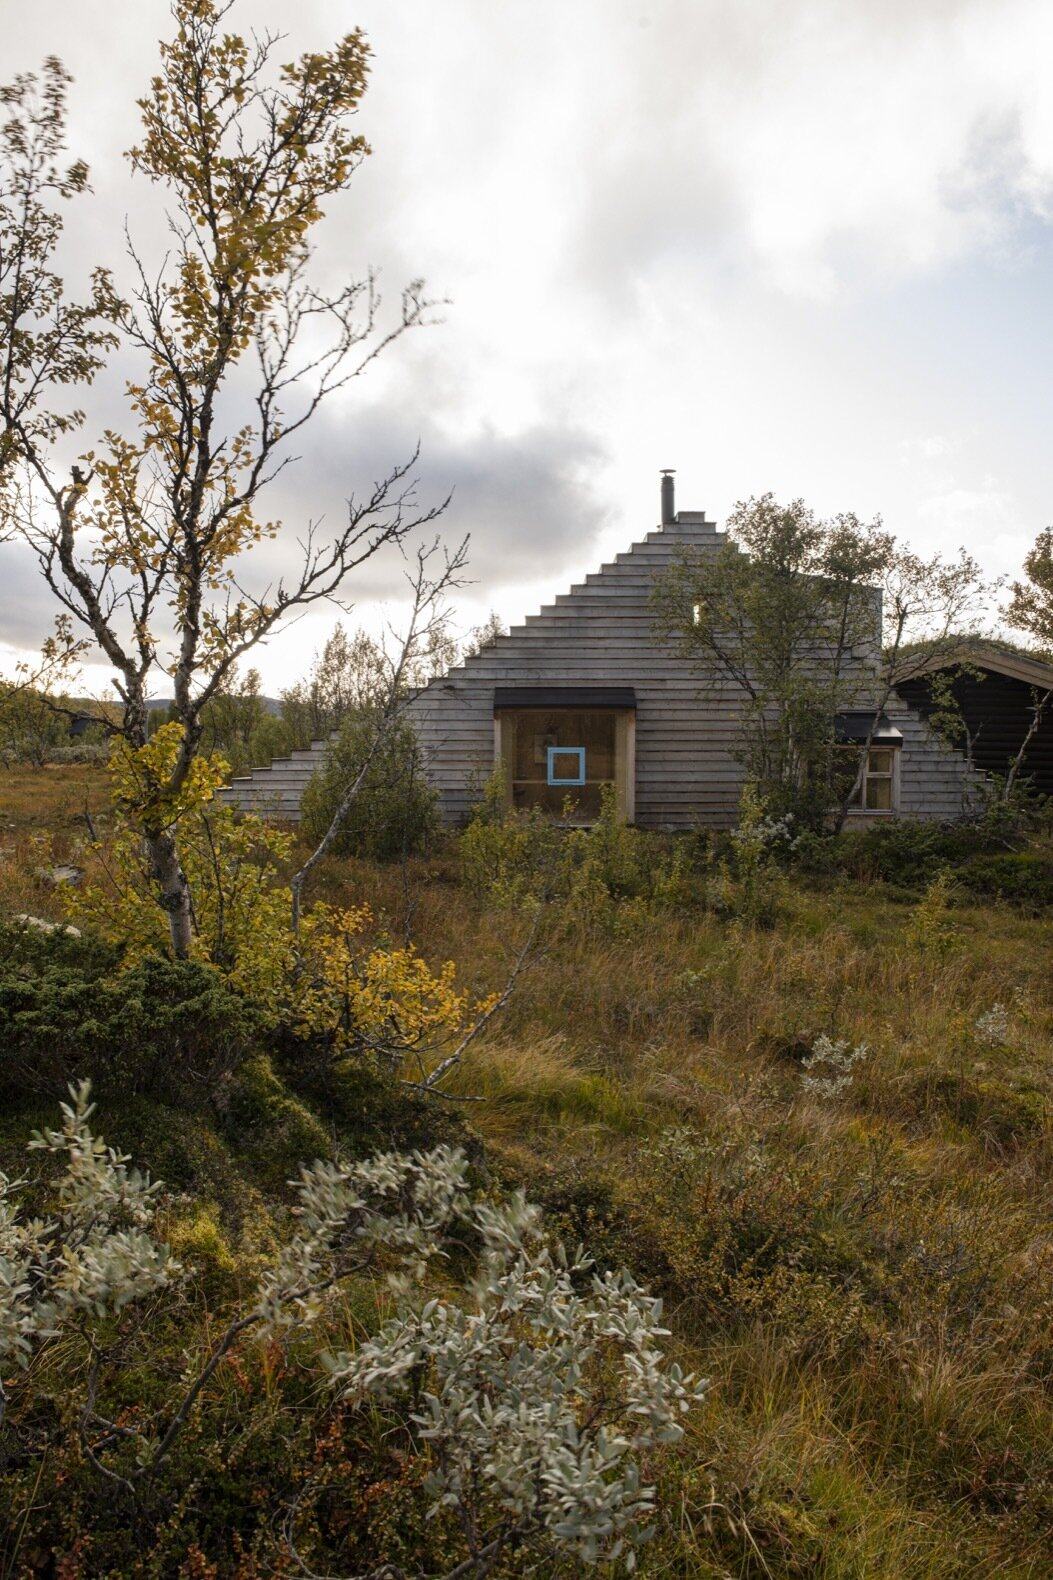 A Stepped Roof Primes This Cozy Norwegian Cabin for Next-Level Fun